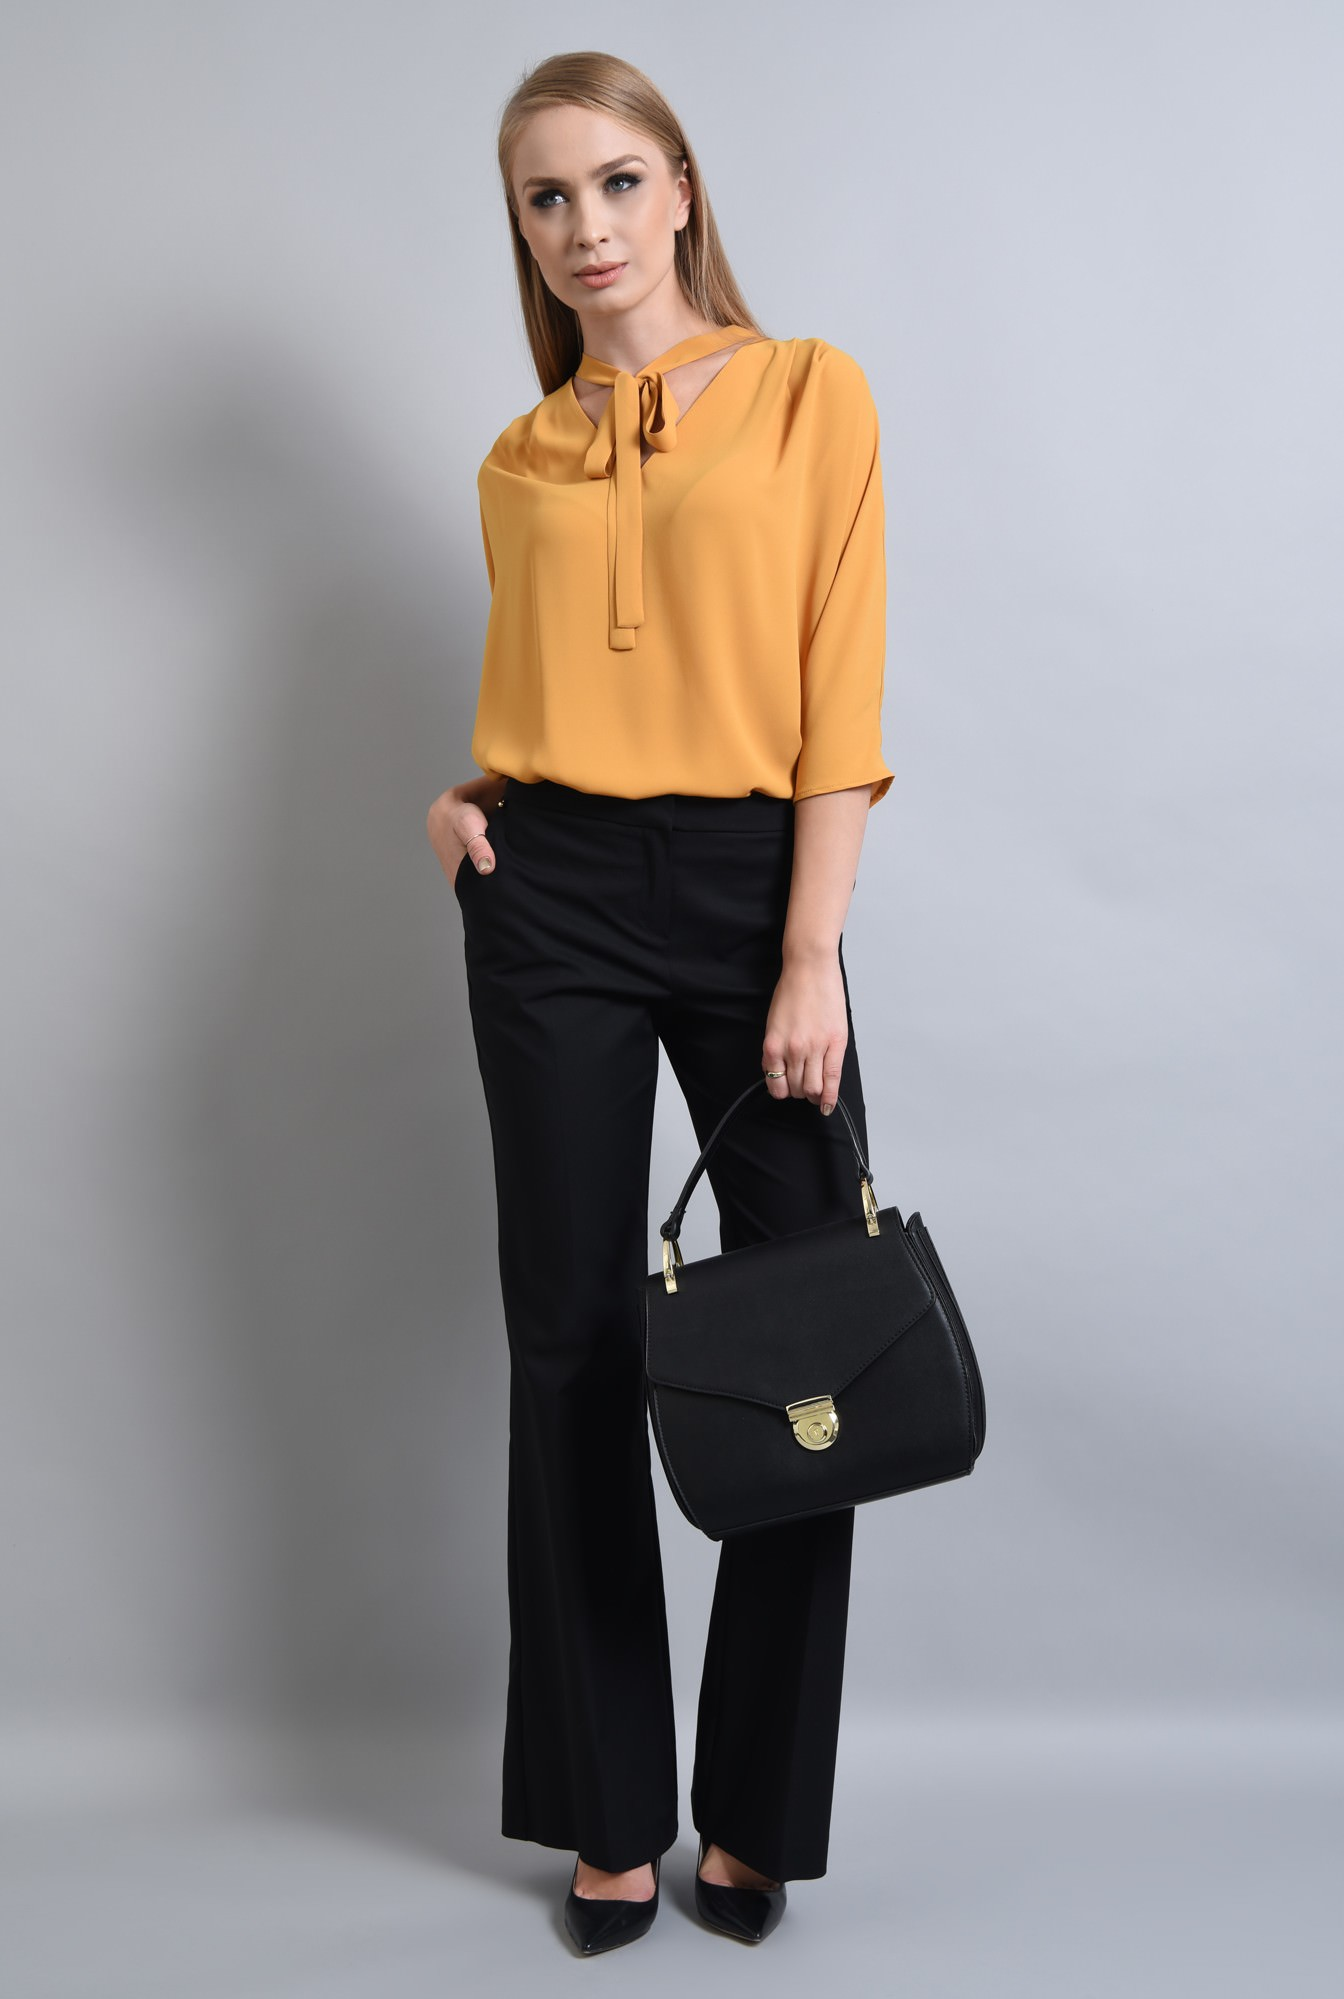 3 - BLUZA OFFICE BL 291-MUSTAR